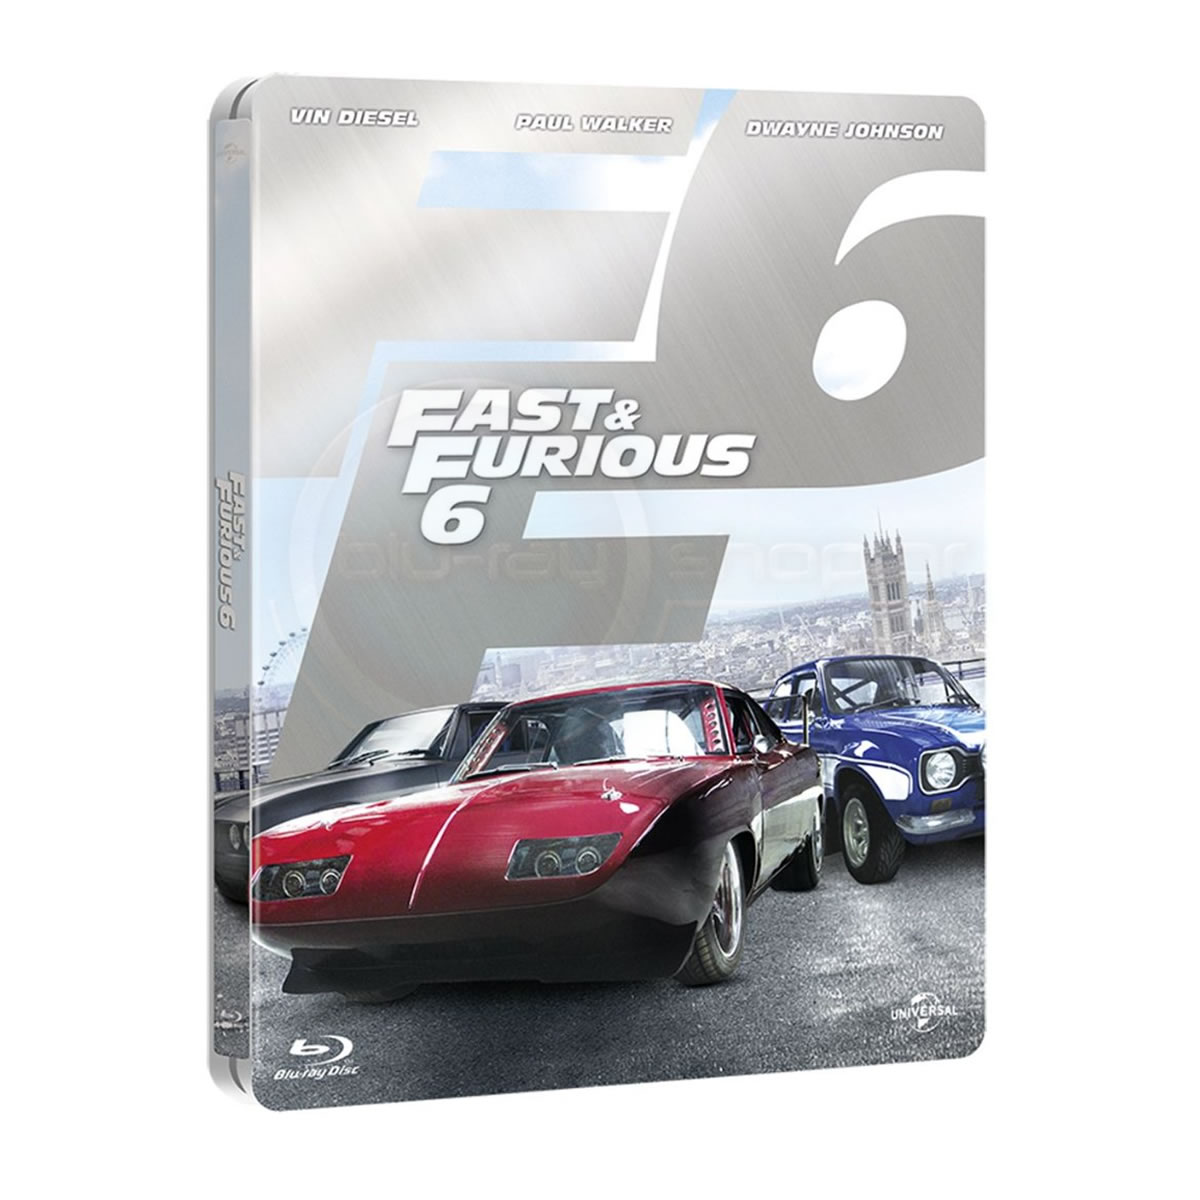 FAST & FURIOUS 6 Extended - ������� ��� ������ 6 Extended Limited Collector's Edition Steelbook ������������ [��������� �� ���������� ����������] (BLU-RAY)